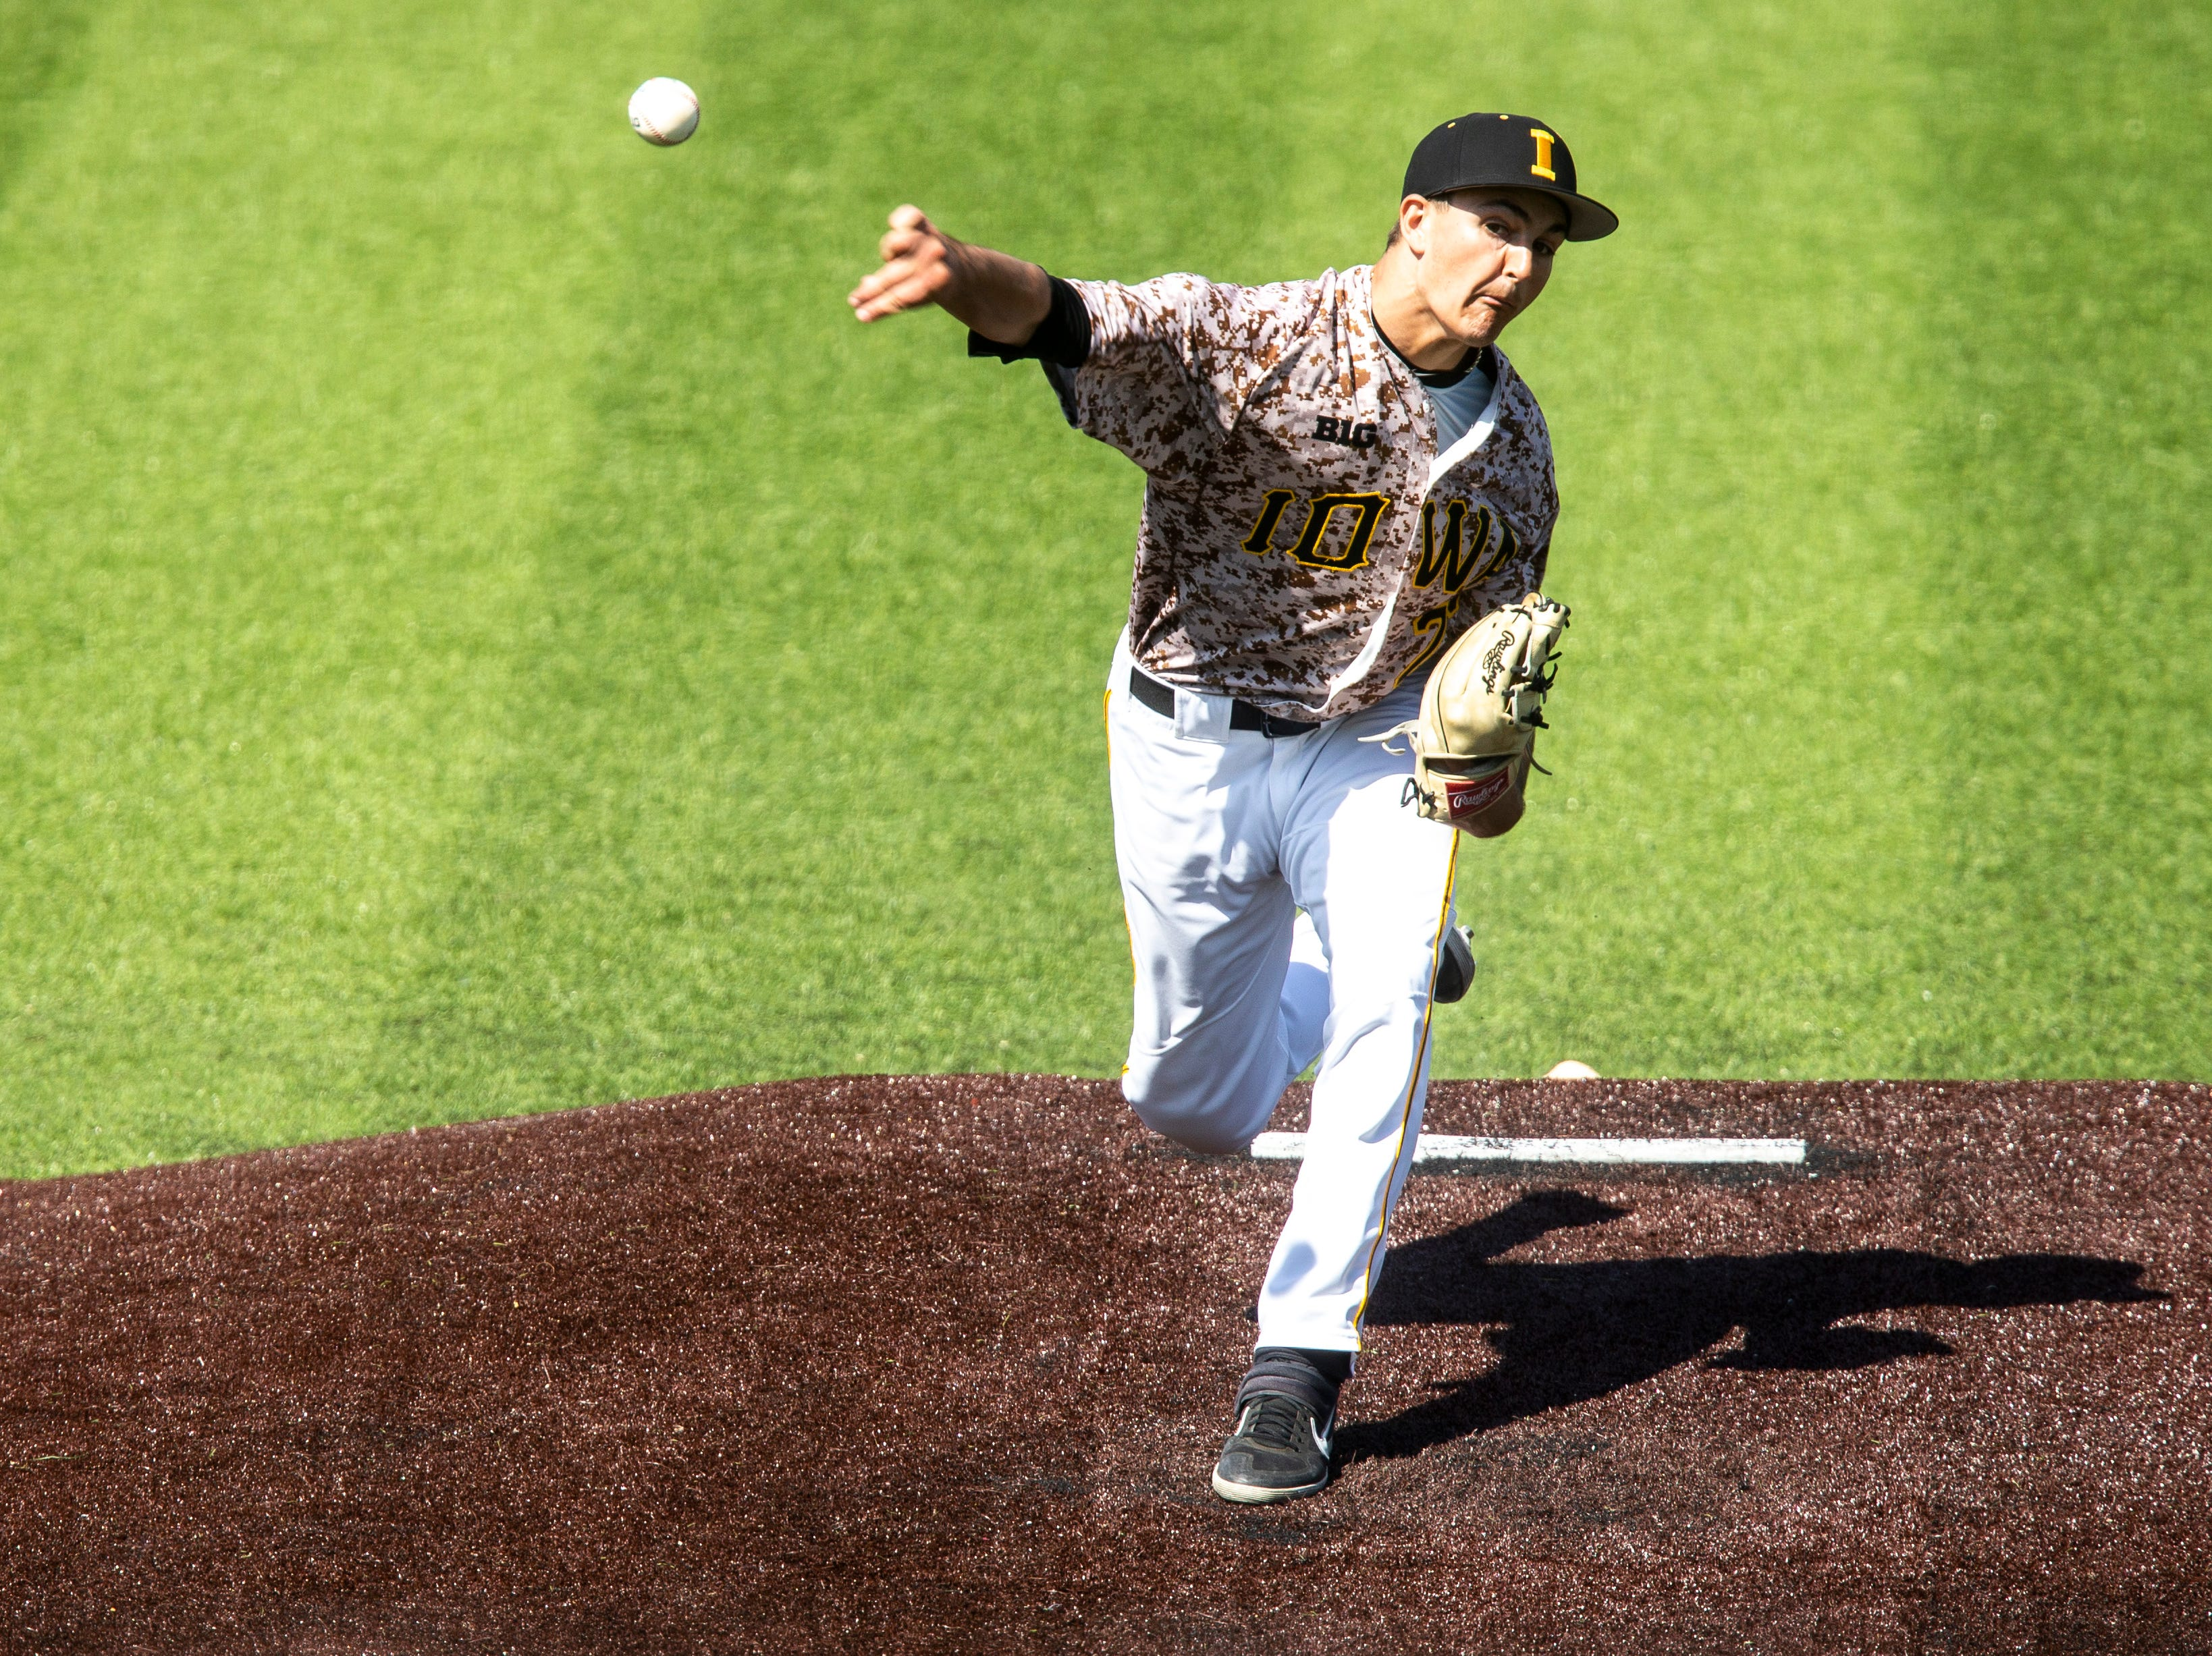 Iowa's Jason Foster (27) delivers a pitch during a NCAA non conference baseball game, Sunday, May 5, 2019, at Duane Banks Field in Iowa City, Iowa.